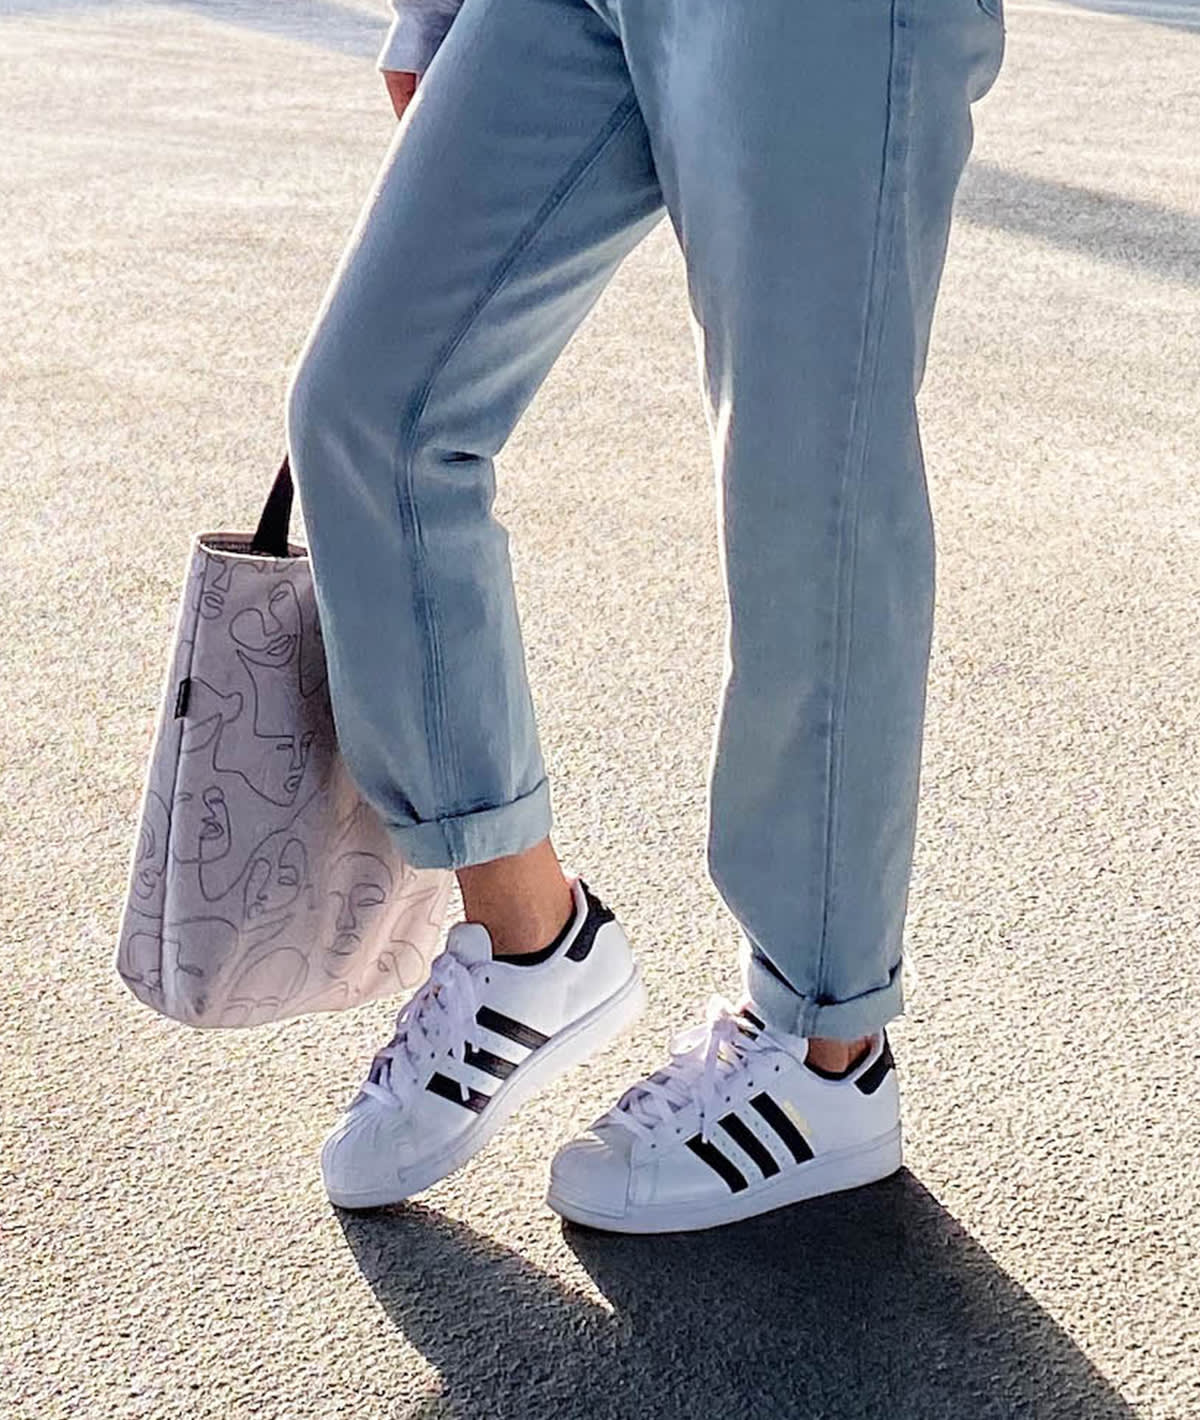 Outfits to Wear with adidas Superstars